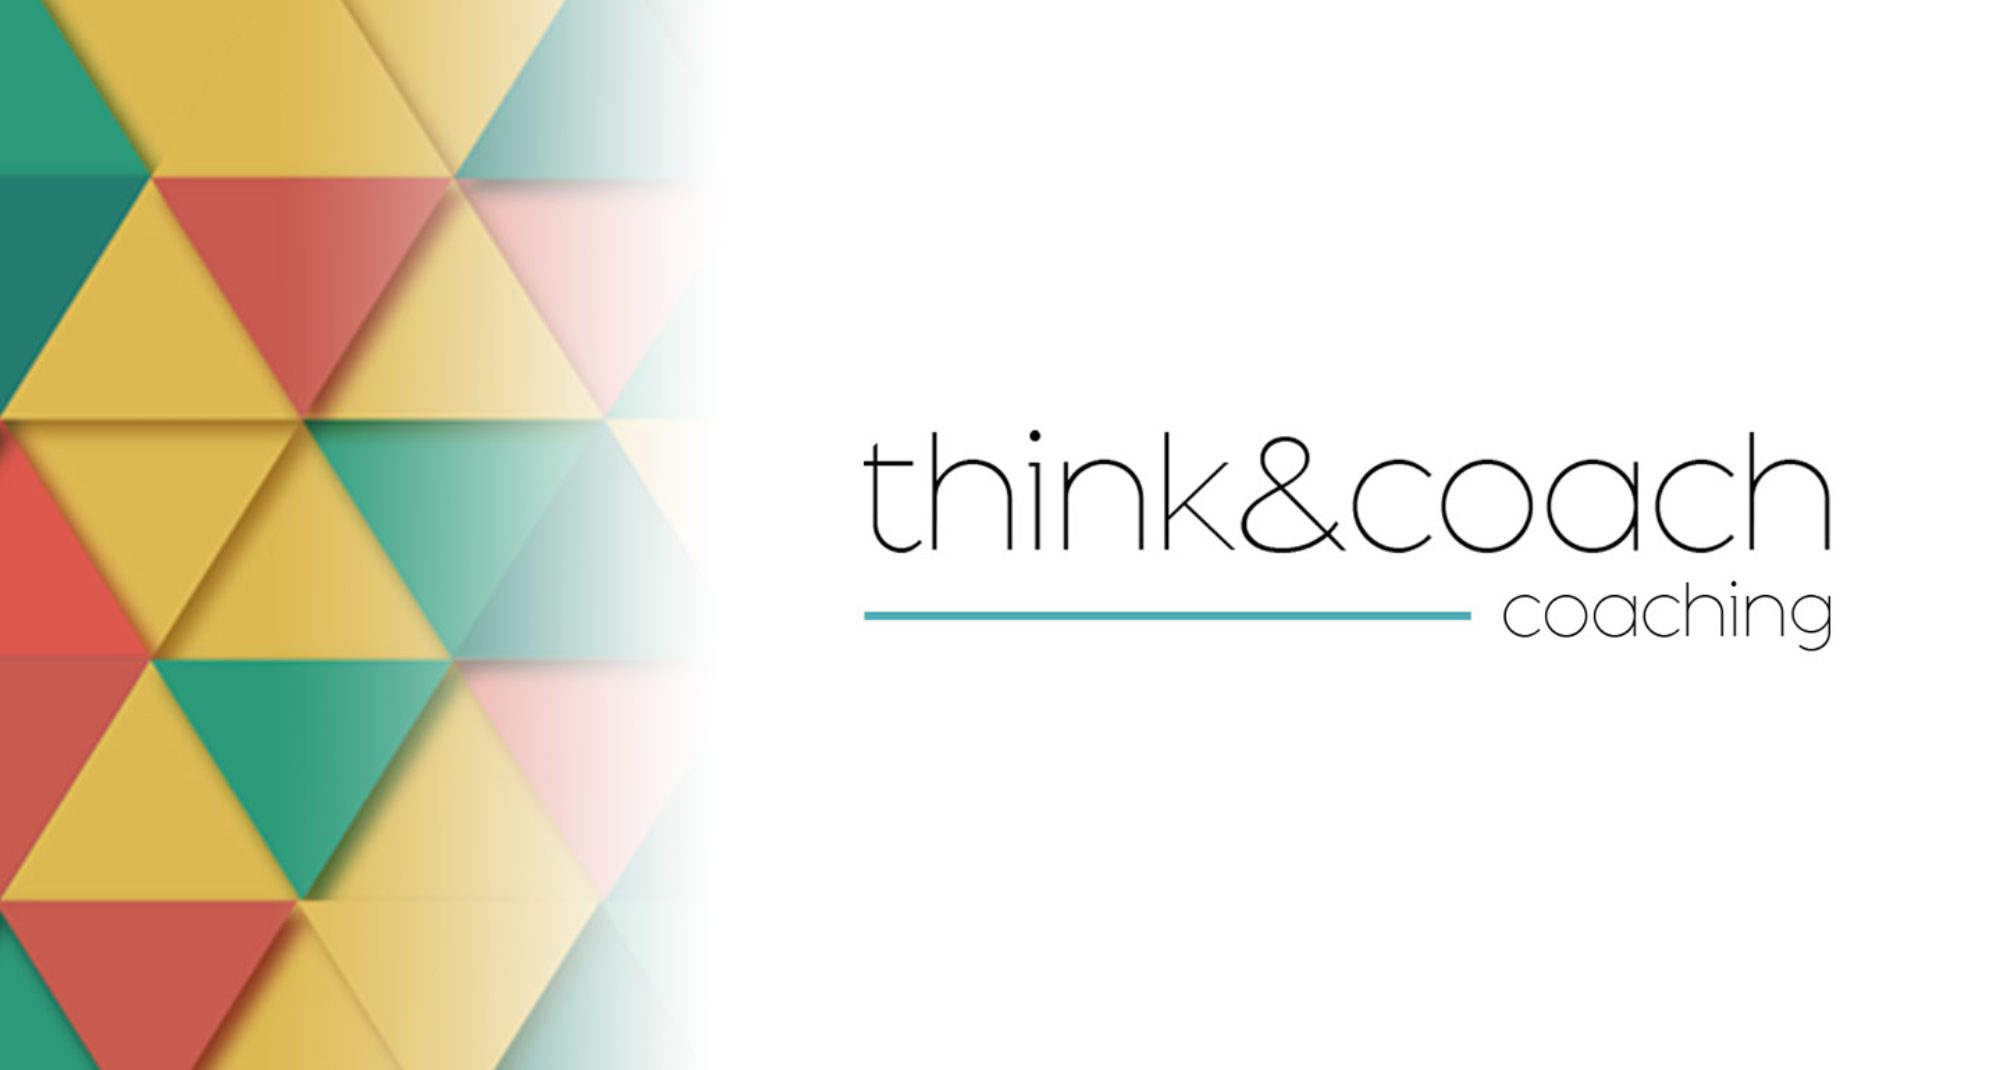 Think and coach